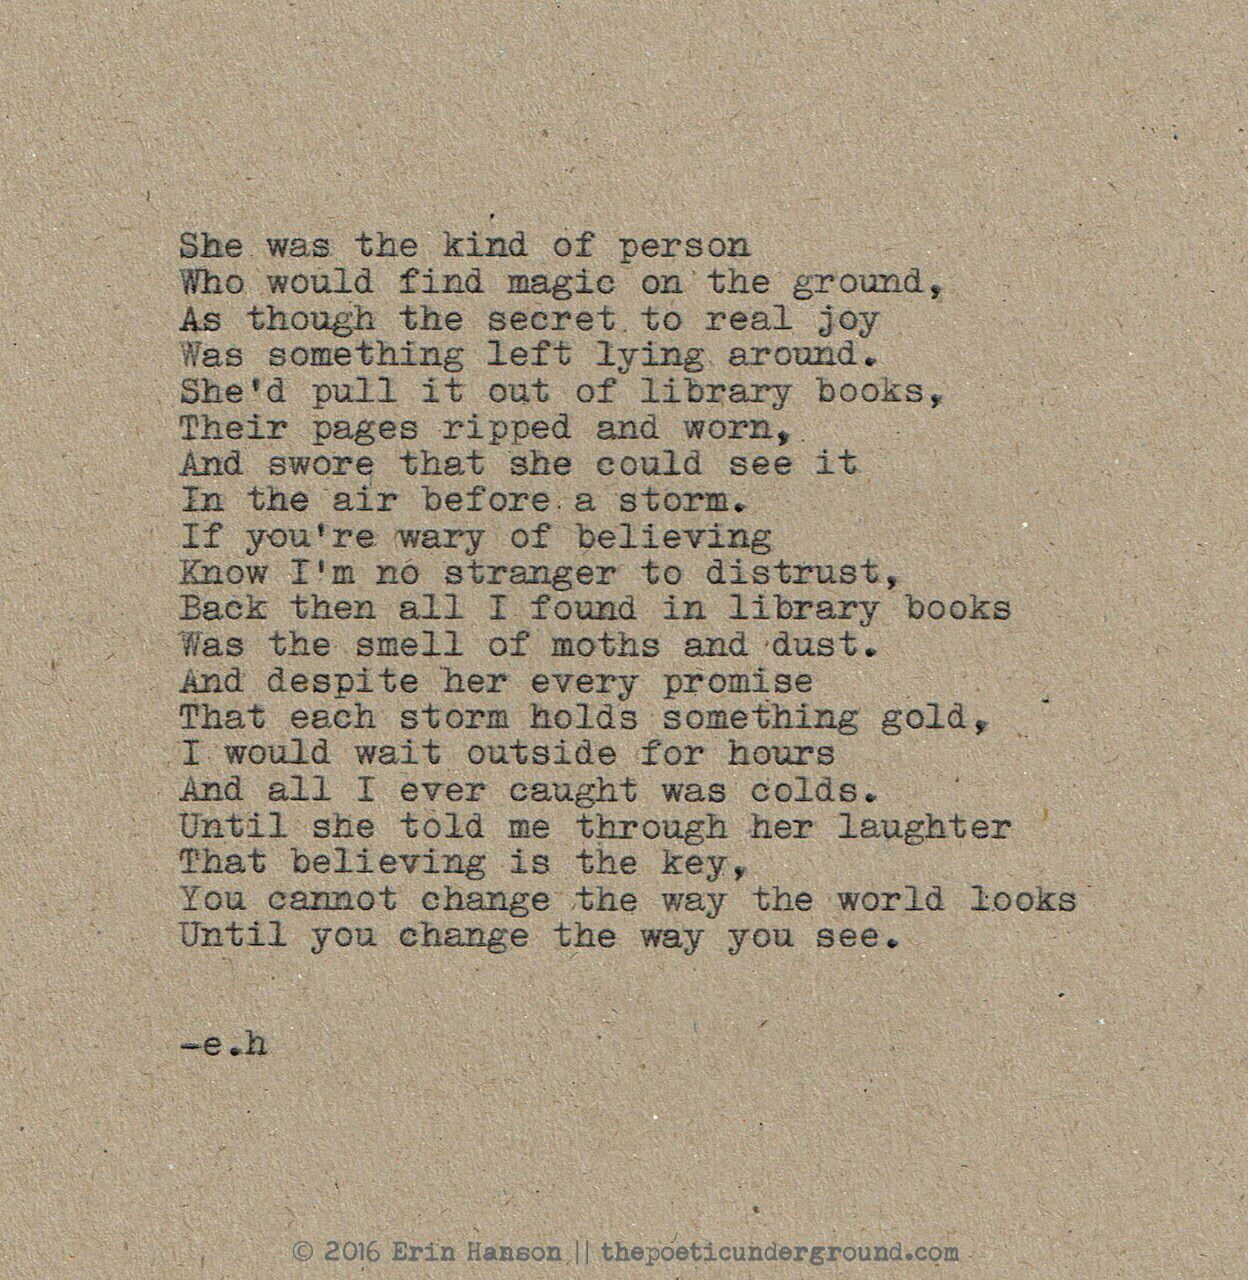 Sad Tumblr Quotes About Love: Pin By Lilly Heckman On Favorite Words